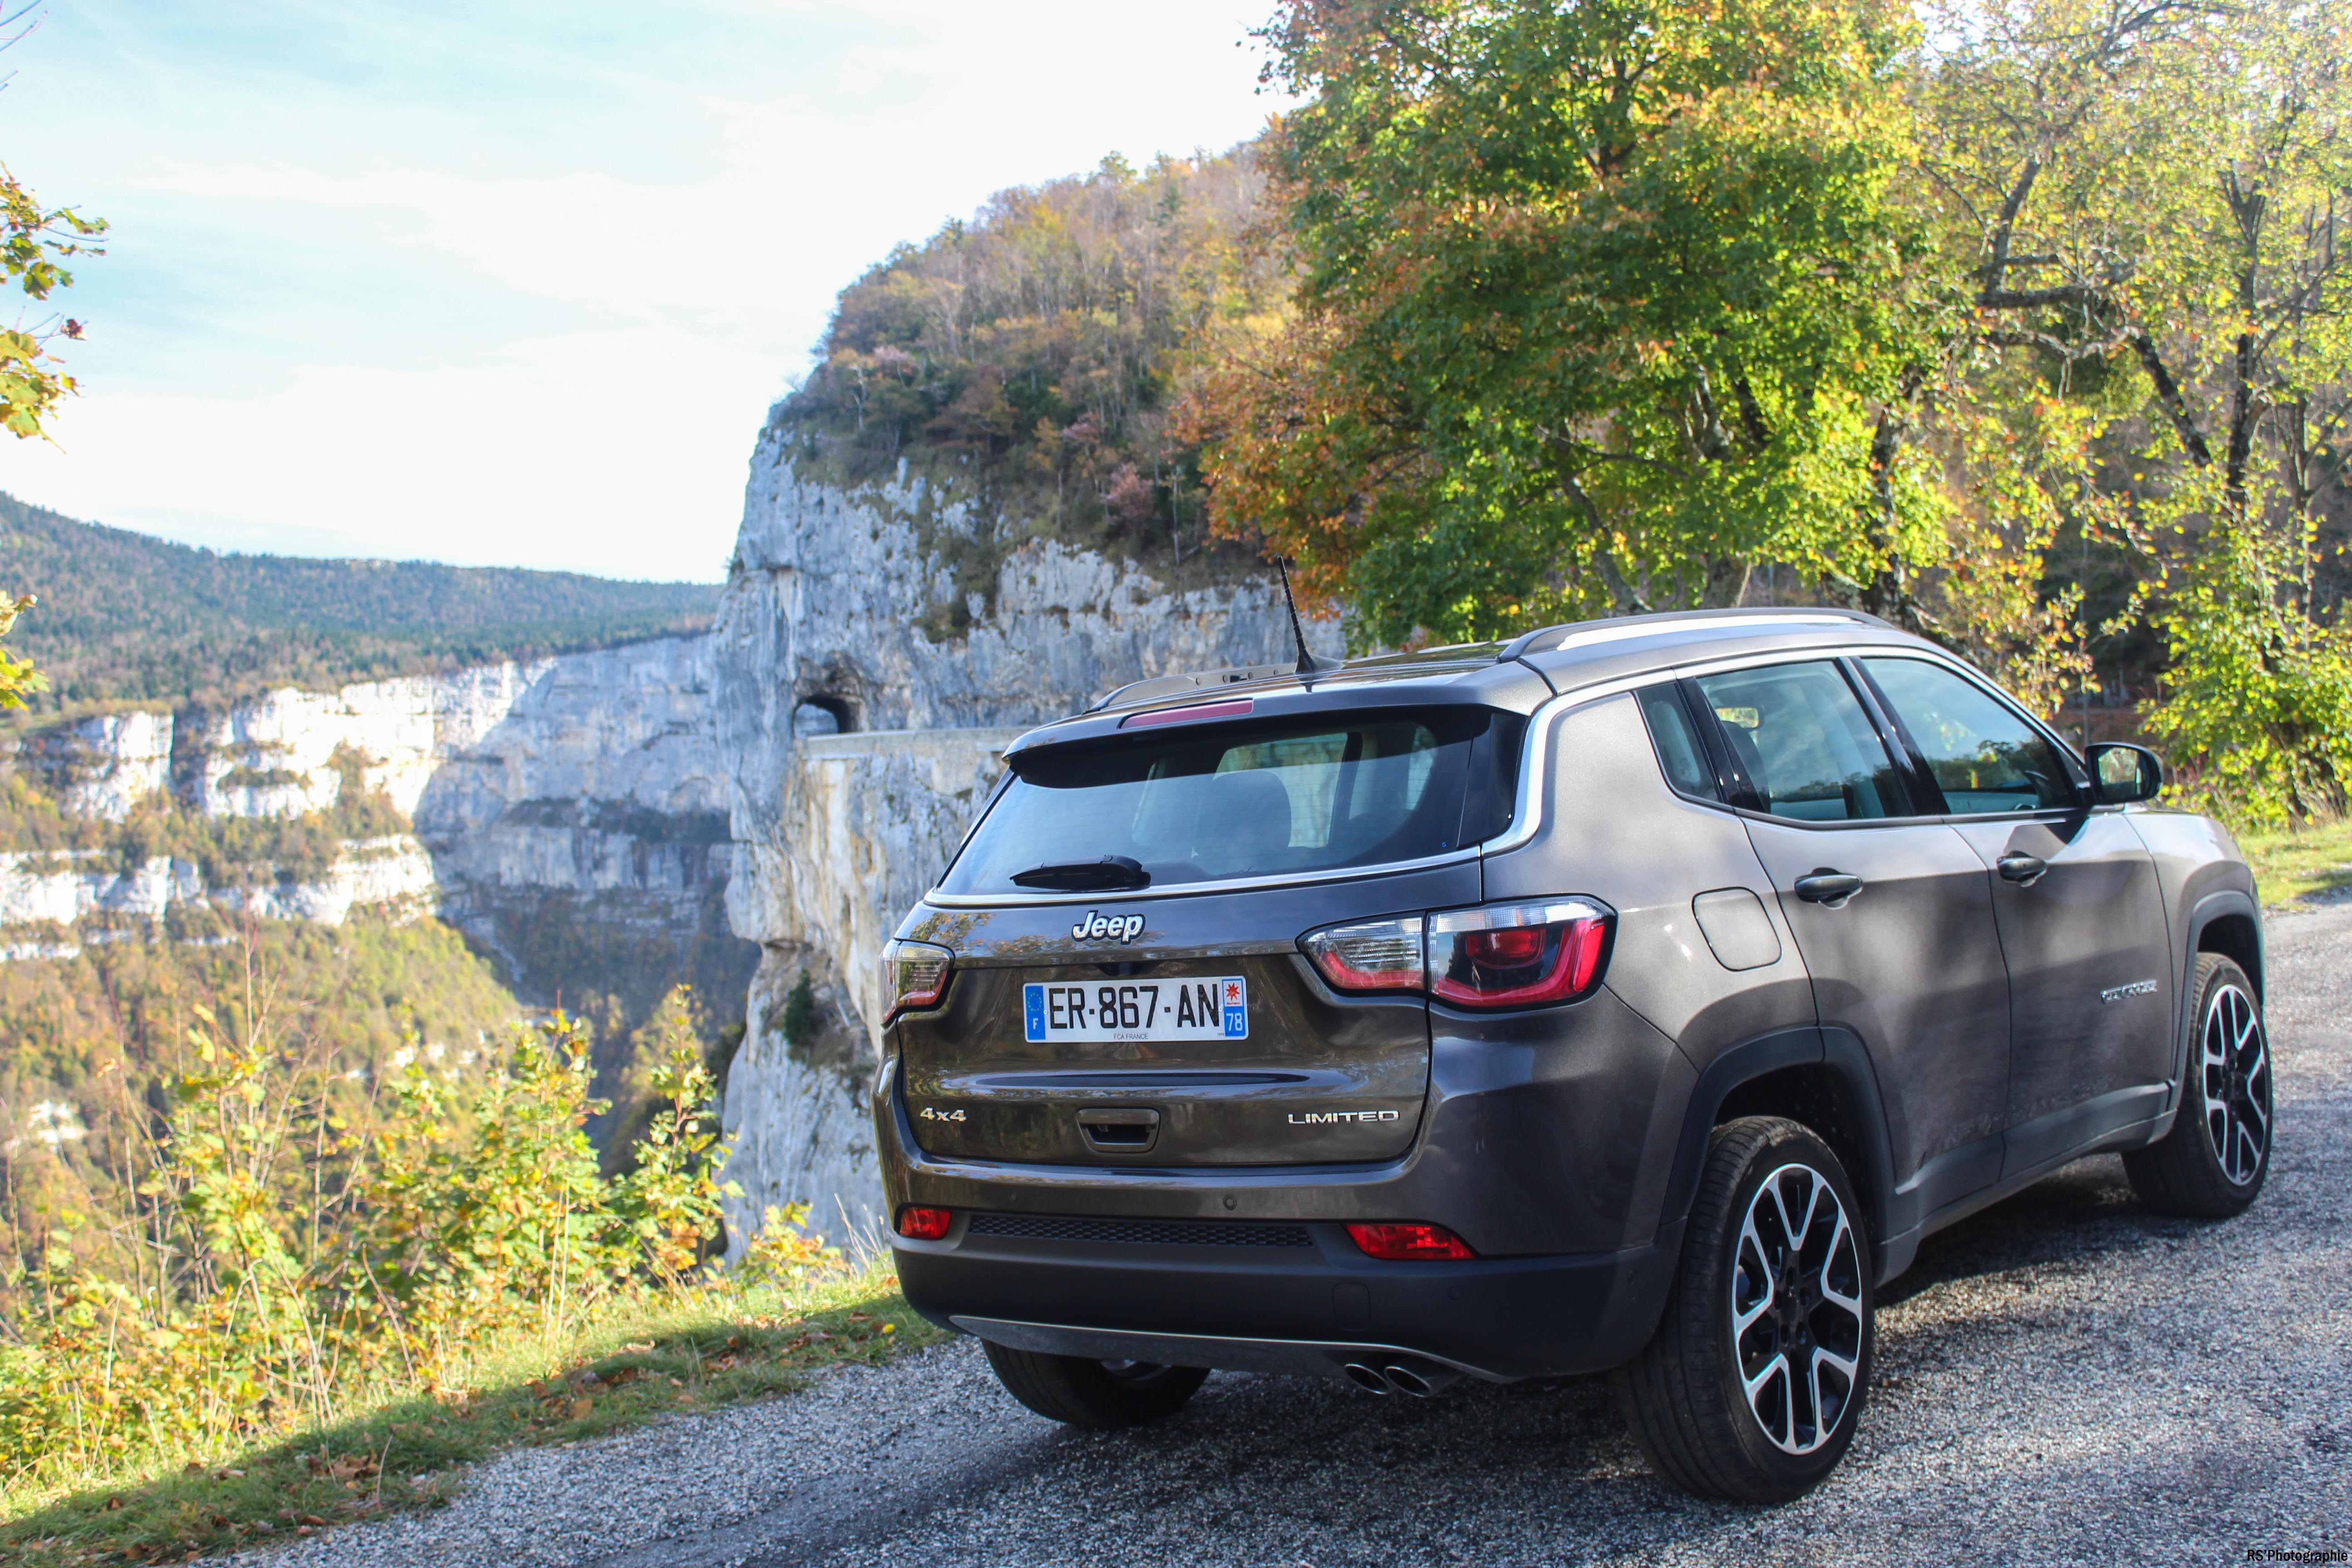 jeepcompass40-jeep-compass-arriere-rear-Arnaud Demasier-RSPhotographie